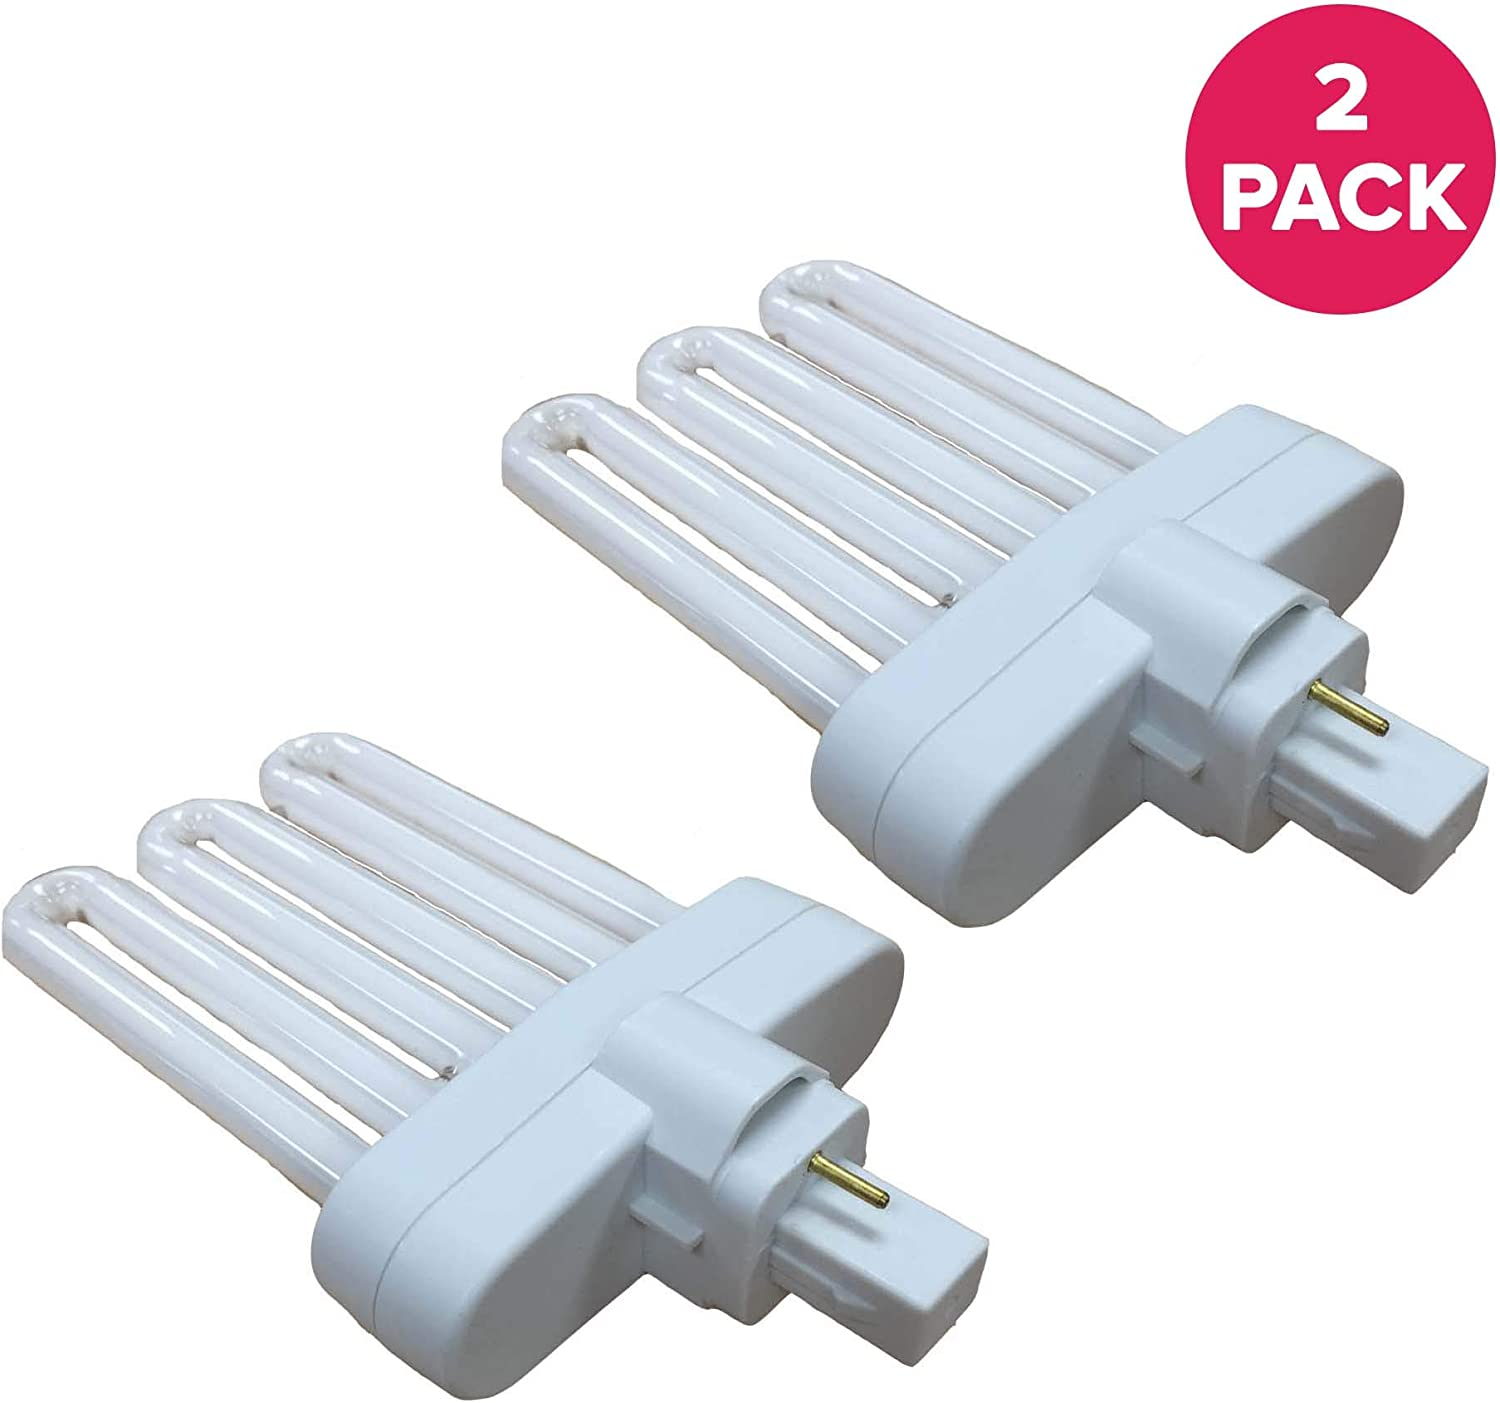 Think Crucial 2 Replacement for Miracle-GRO AeroGarden B Grow Bulb, Fluorescent Light Projection, 7 x 5 x 4.25 in, Compatible with Part # 970904-0200 & 100340